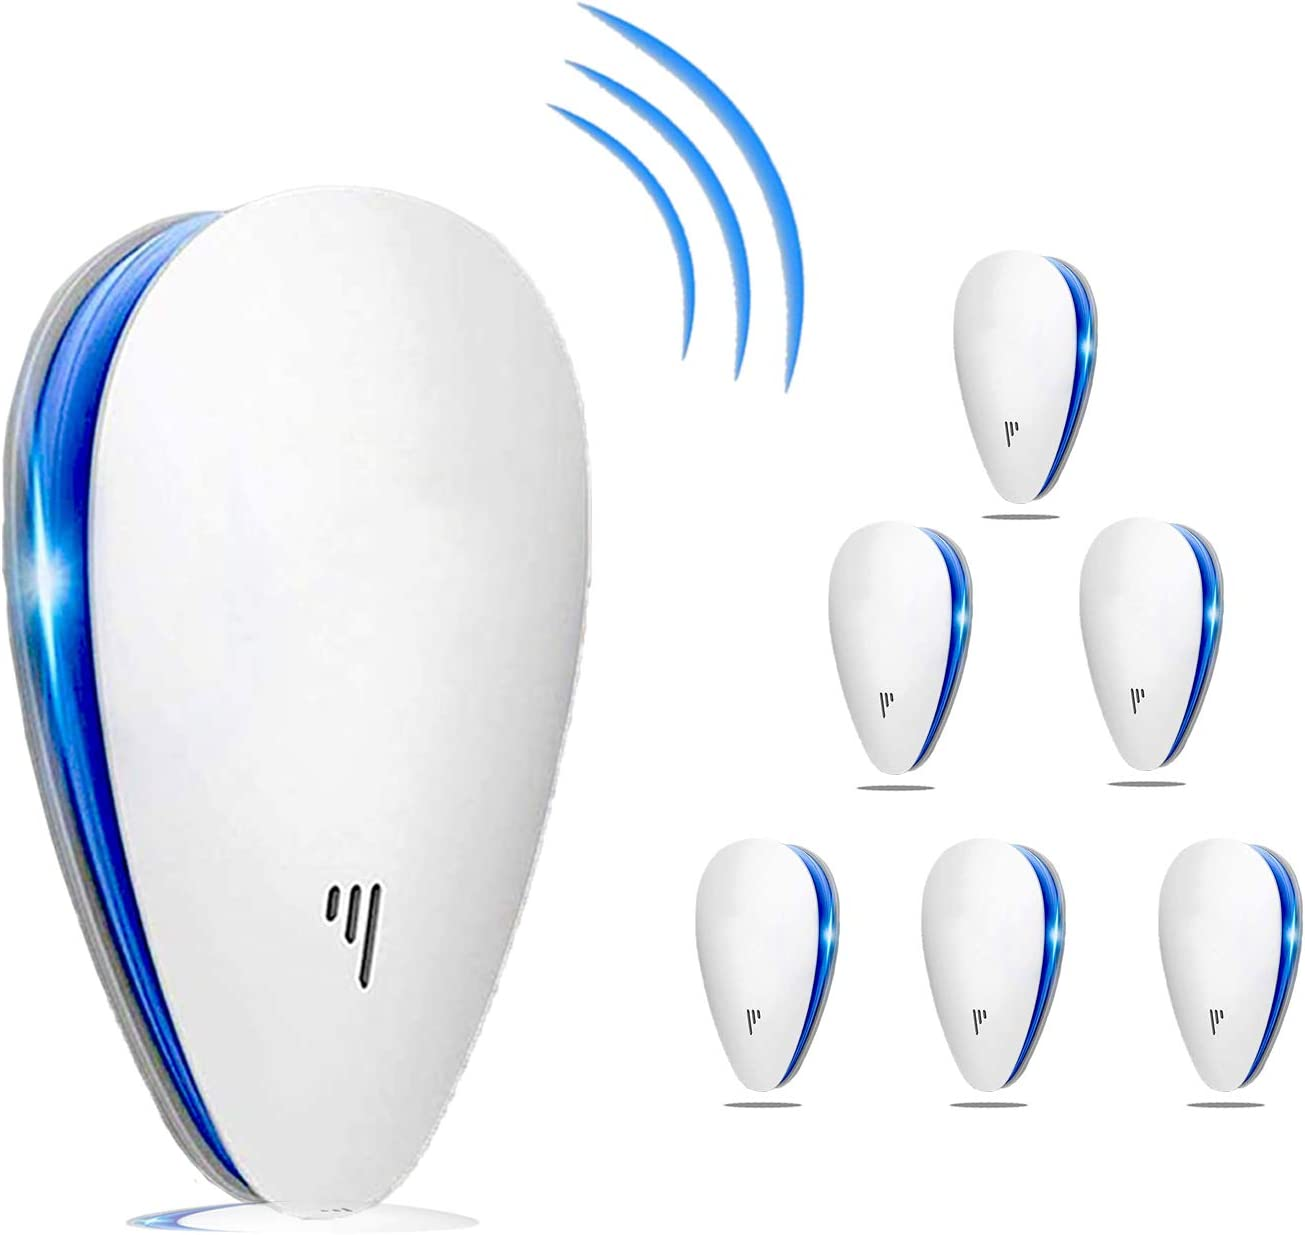 Ultrasonic Pest Repeller(6 Pack), 2020 Pest Control Ultrasonic Repellent, Electronic Repellant - Bug Repellent for Ant, Mosquito, Mice, Spider, Roach, Rat, Flea, Fly